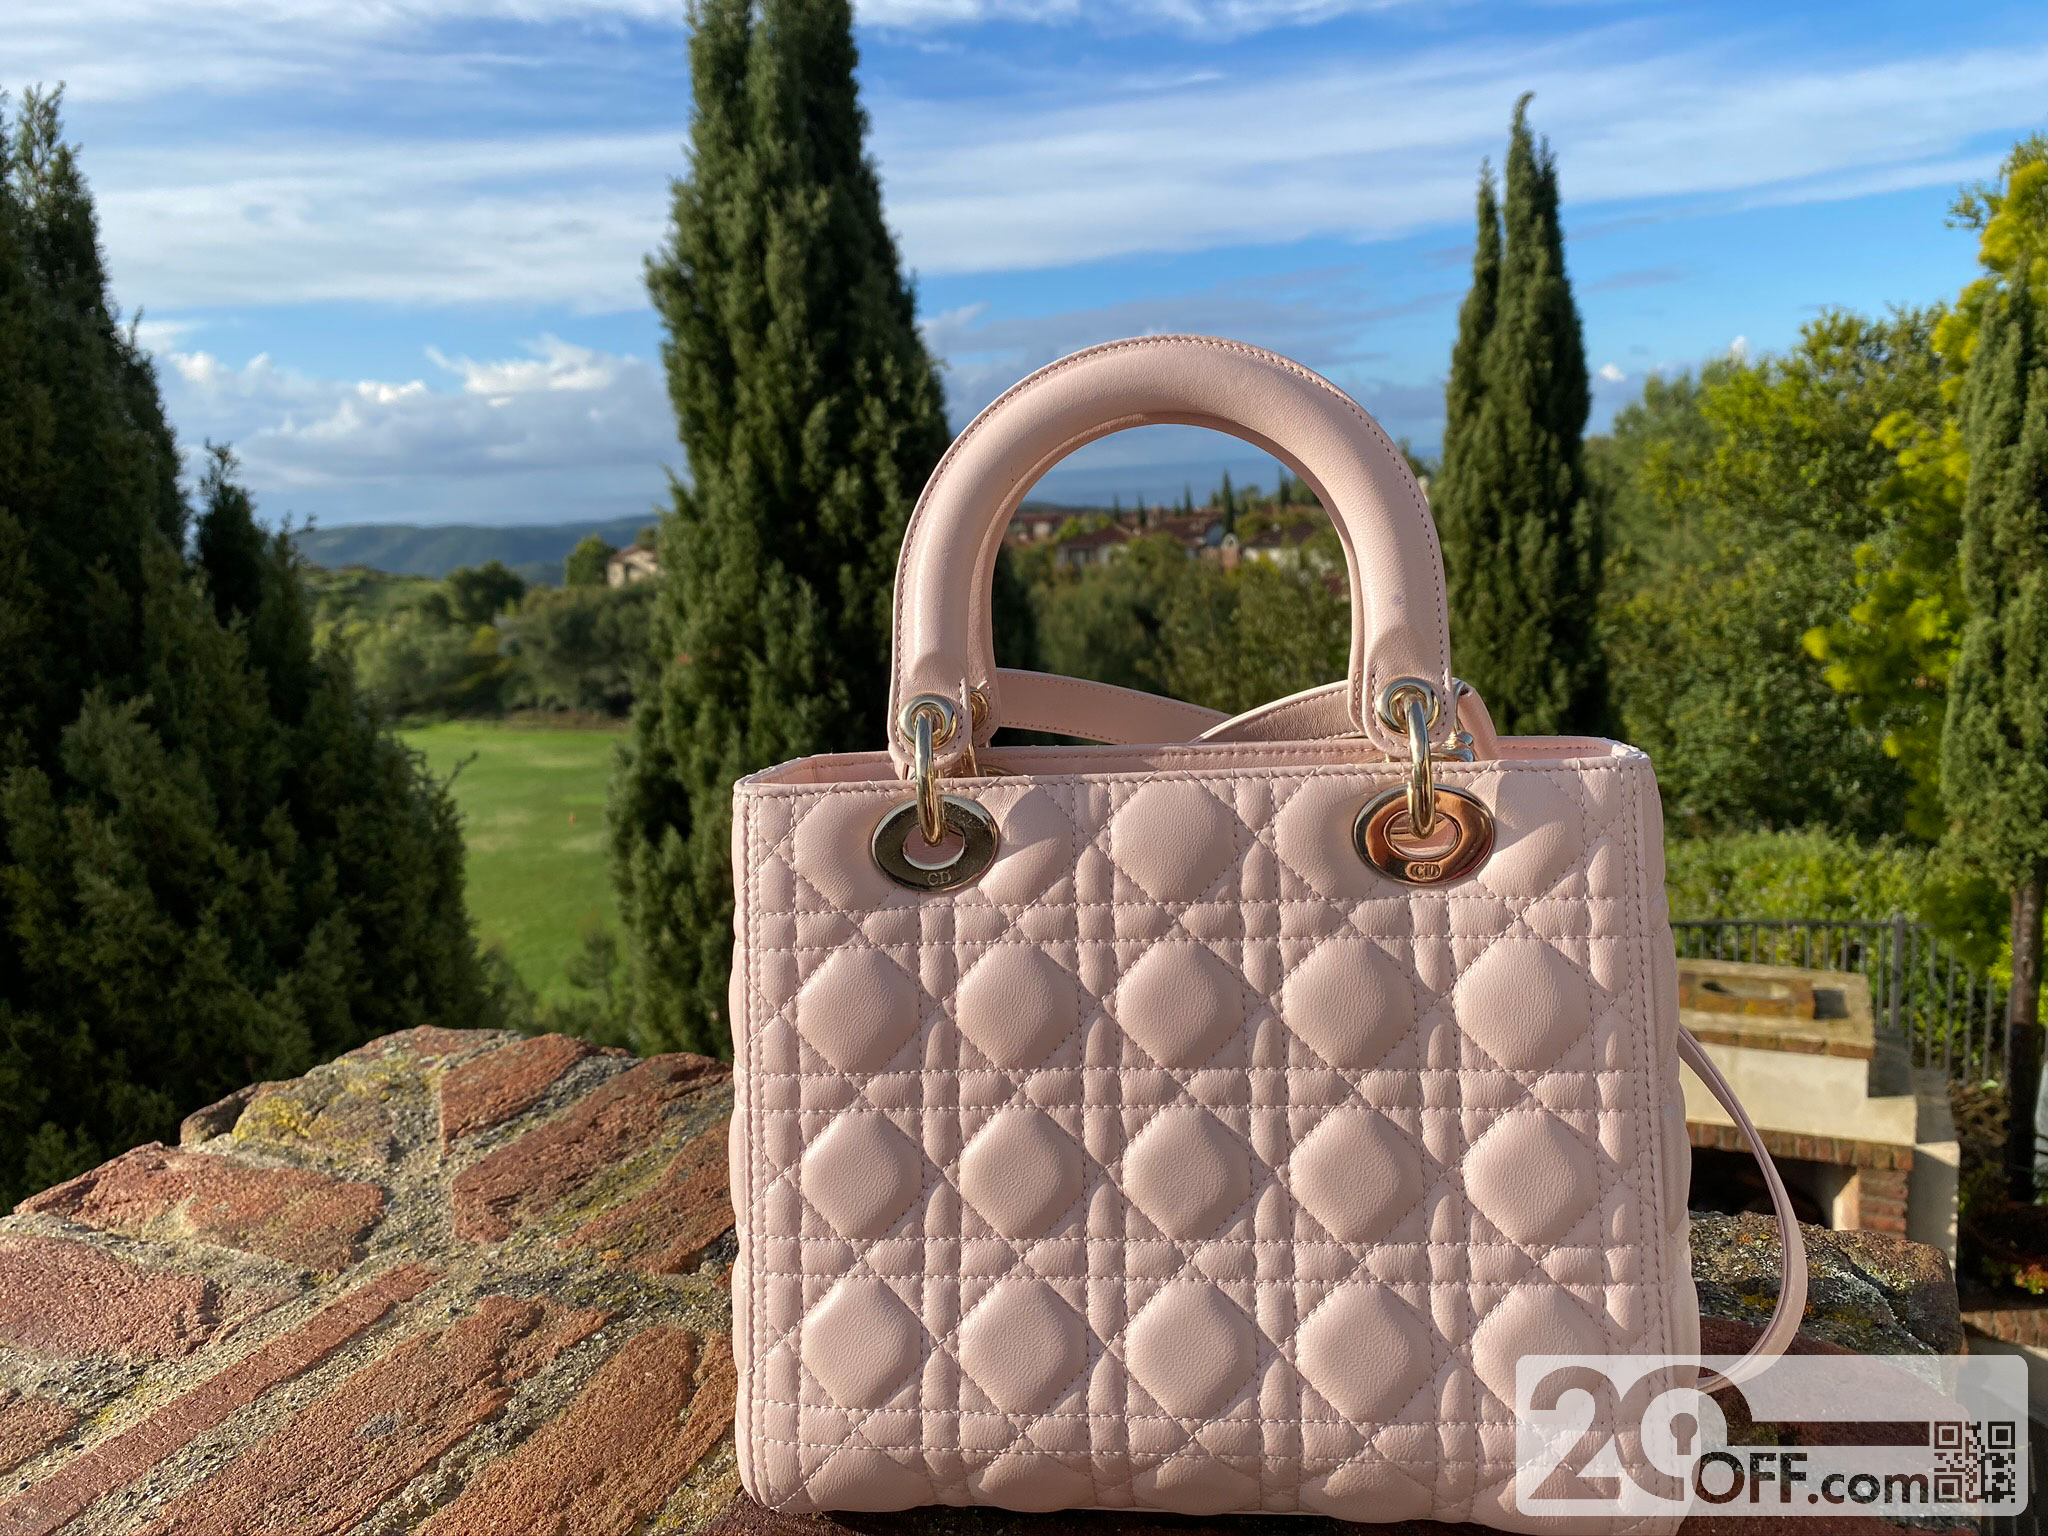 Nice Dior Bag for Mom